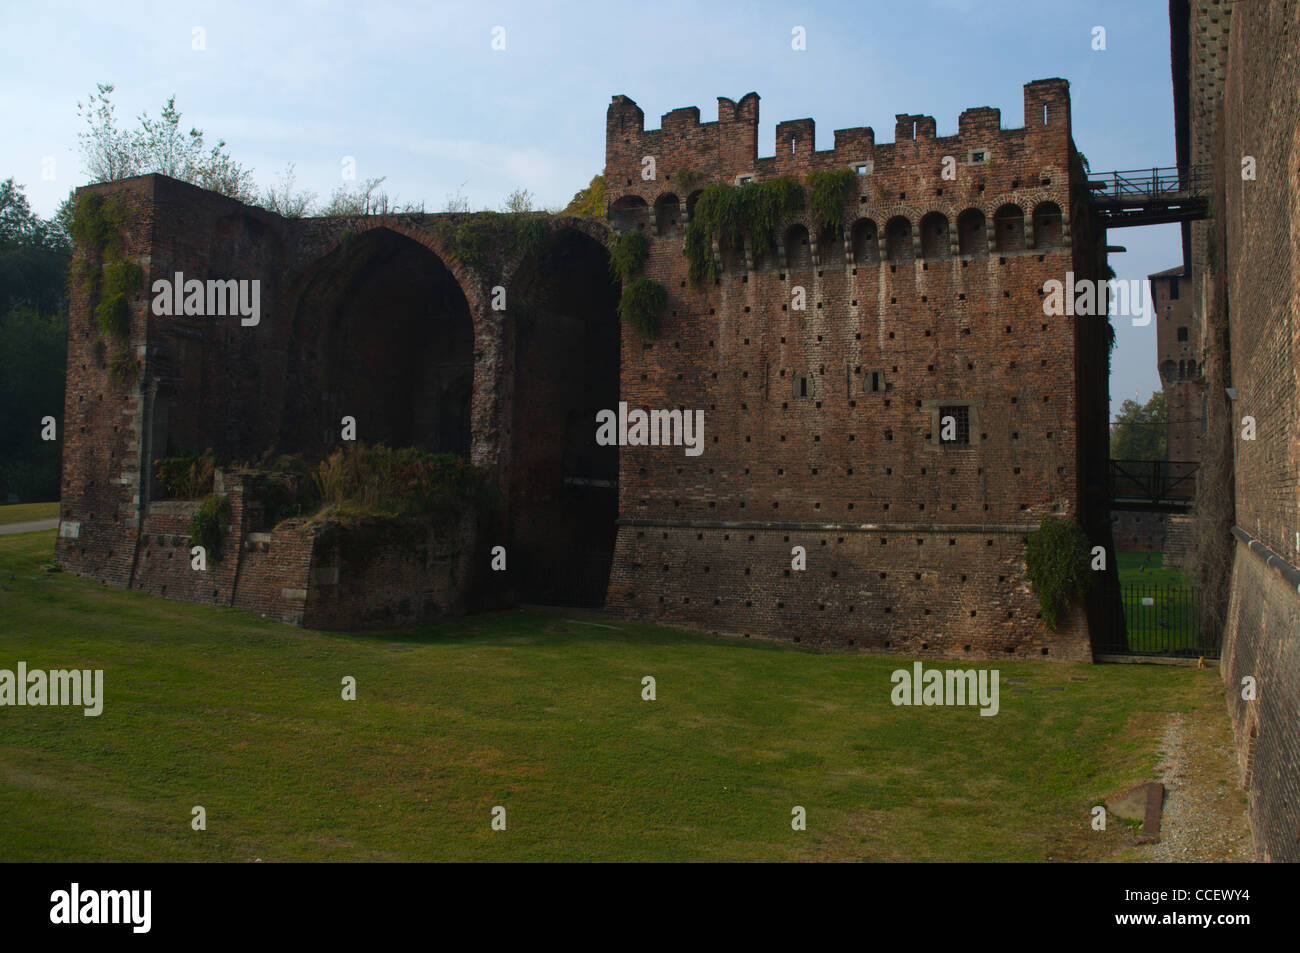 Moats dried by Napoleon in early 18th century encircling the walls of Castello Sforzesco castle Milan Lombardy region - Stock Image